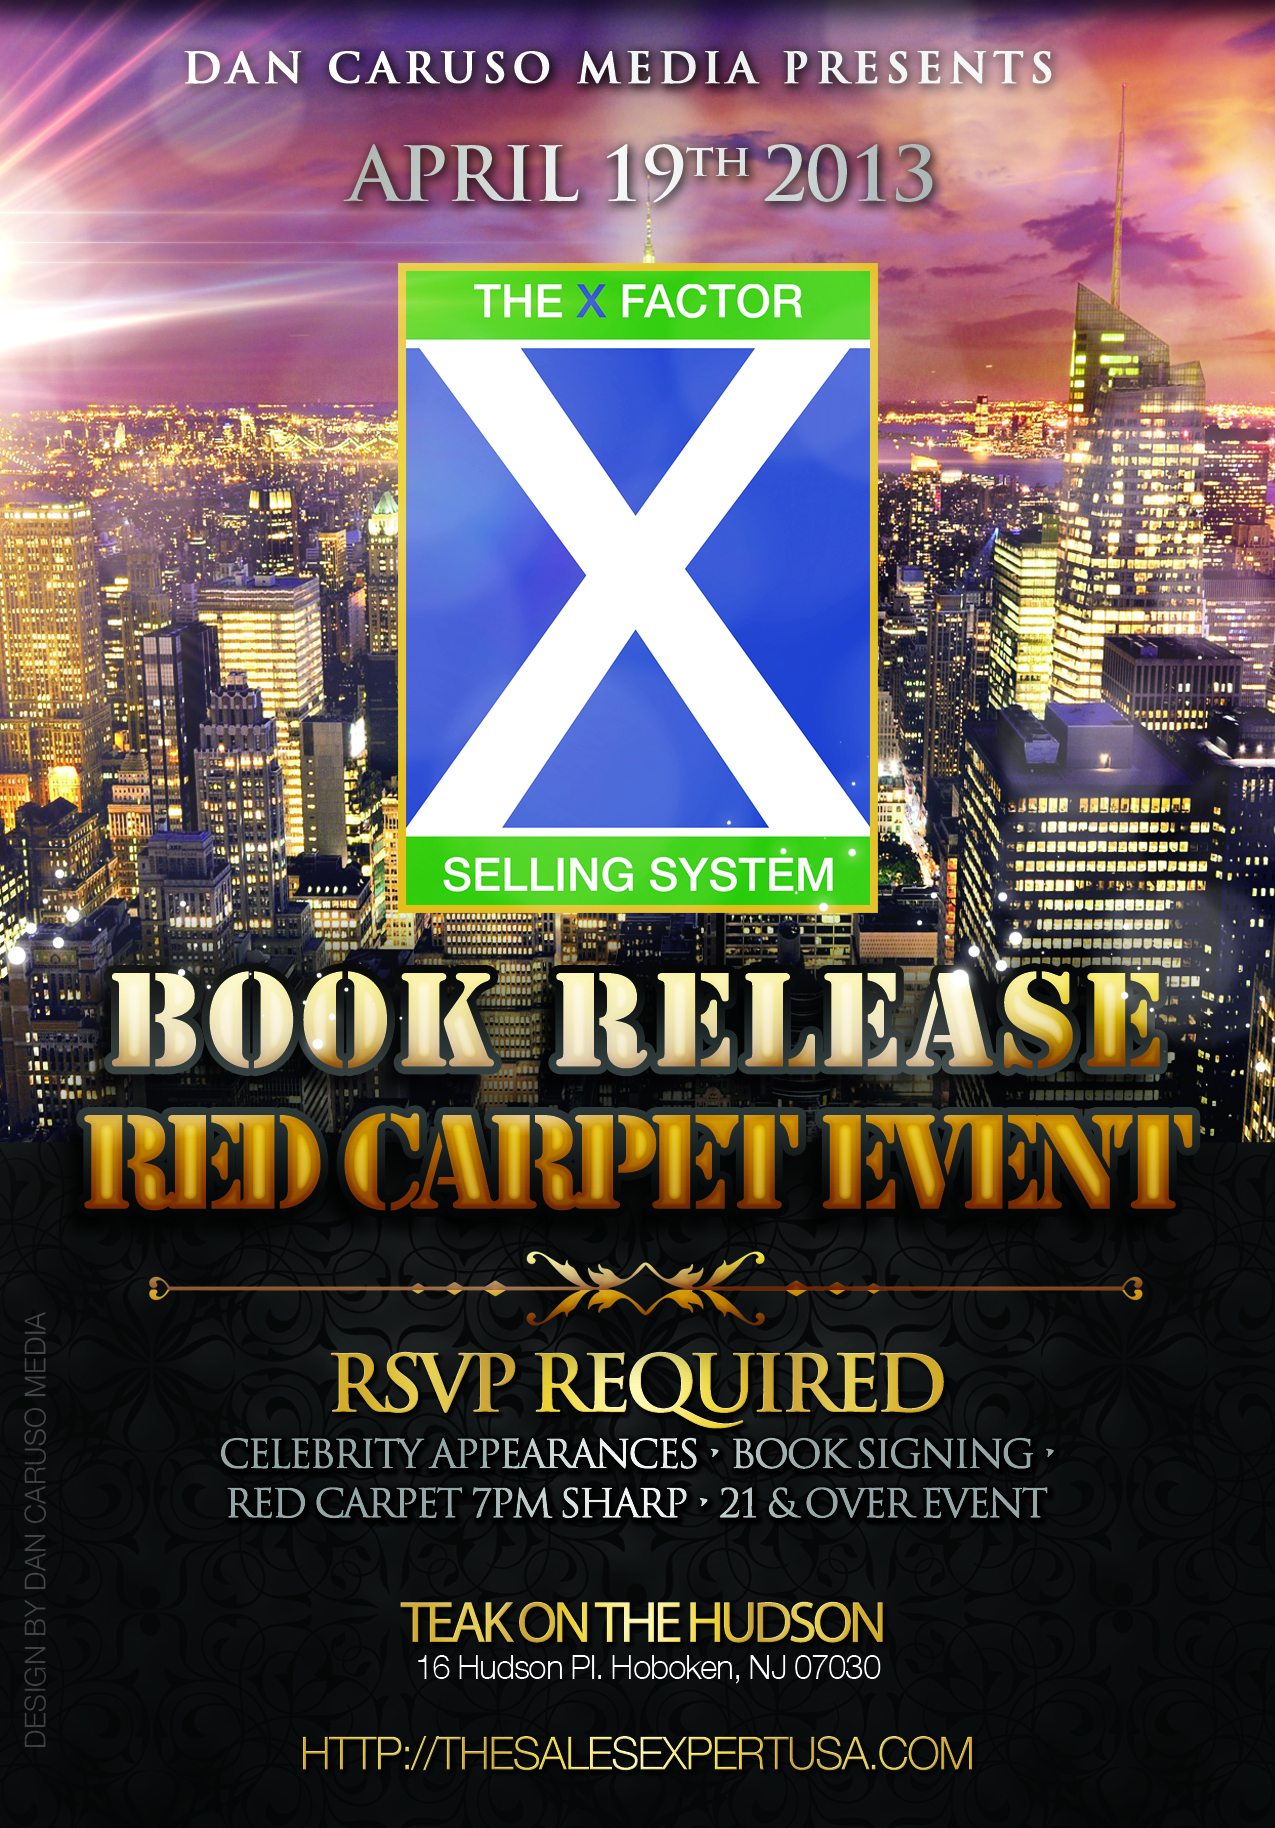 Dan Caruso Media Presents The X FACTOR Selling System Book Release Red Carpet Event 04.19.2013 at Teak, Hoboken NJ